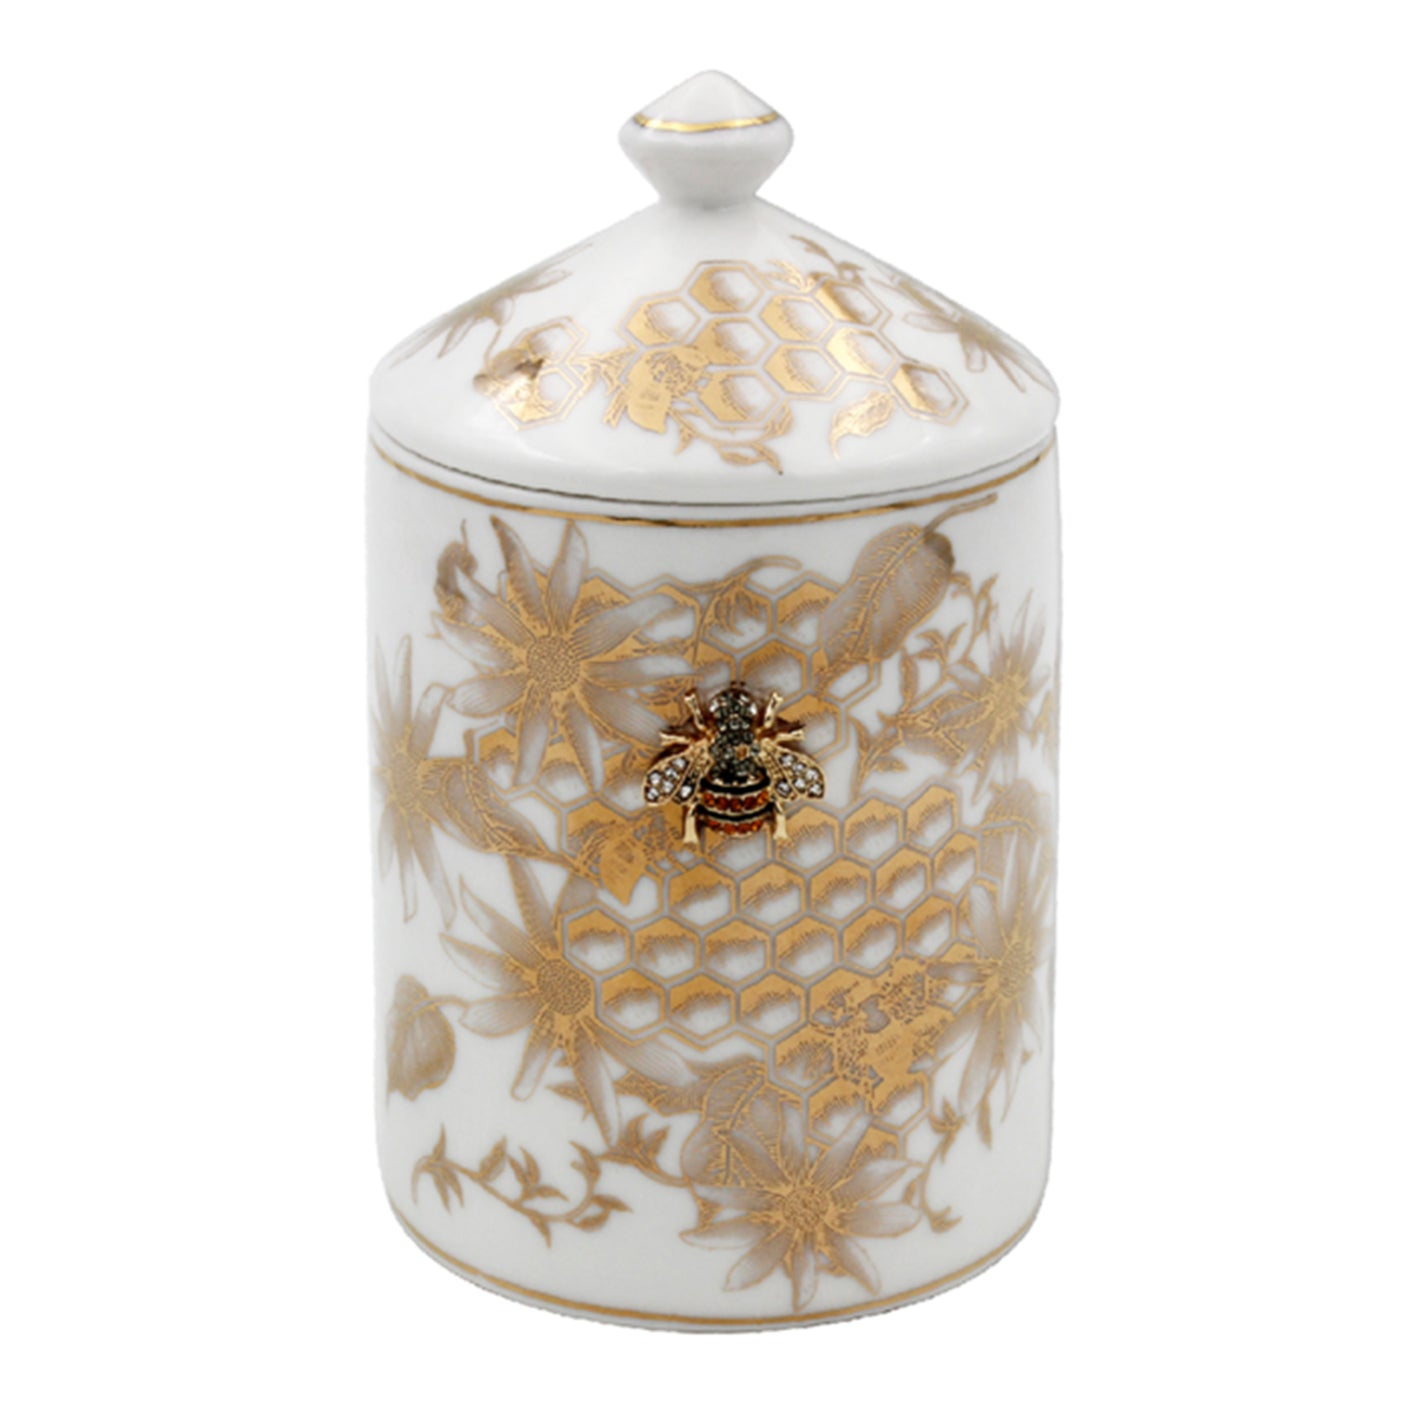 Honeycomb Bee Scented Candle - Floral Honey